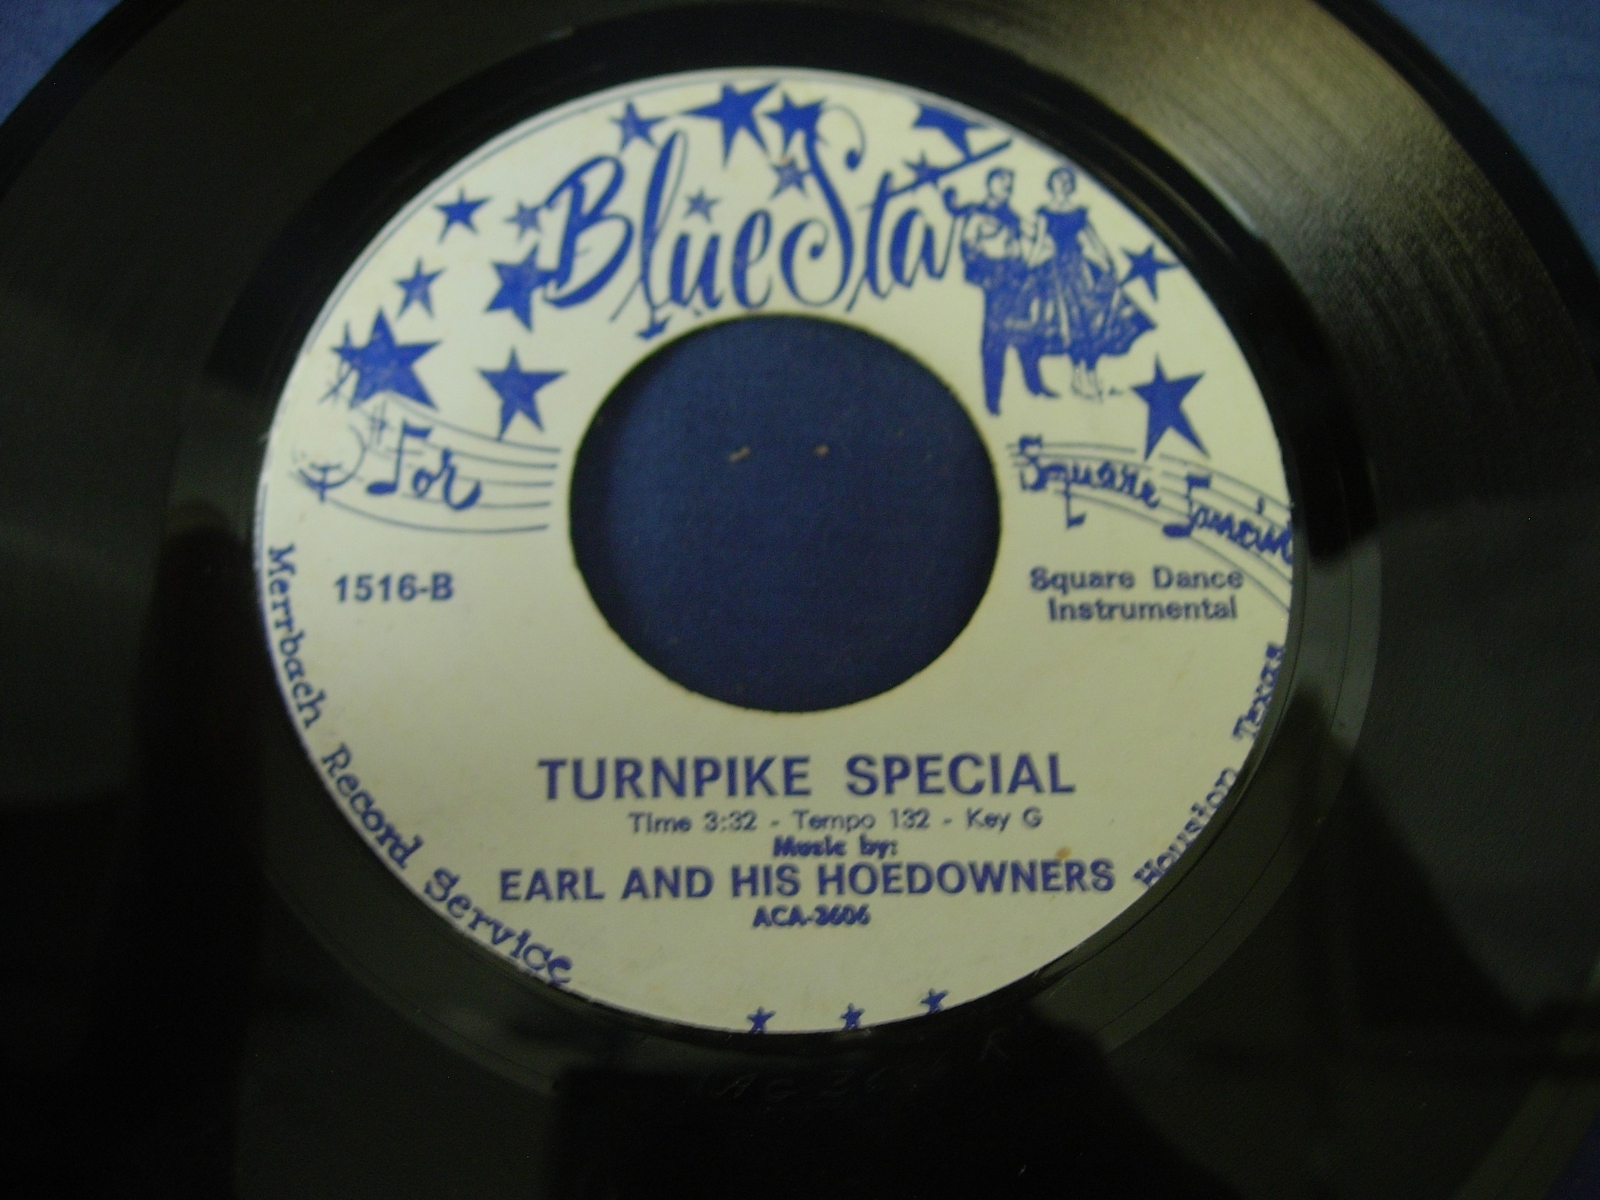 Earl & His Hoedowners - Briar Patch / Turnpike Special - Blue Star Records 1516